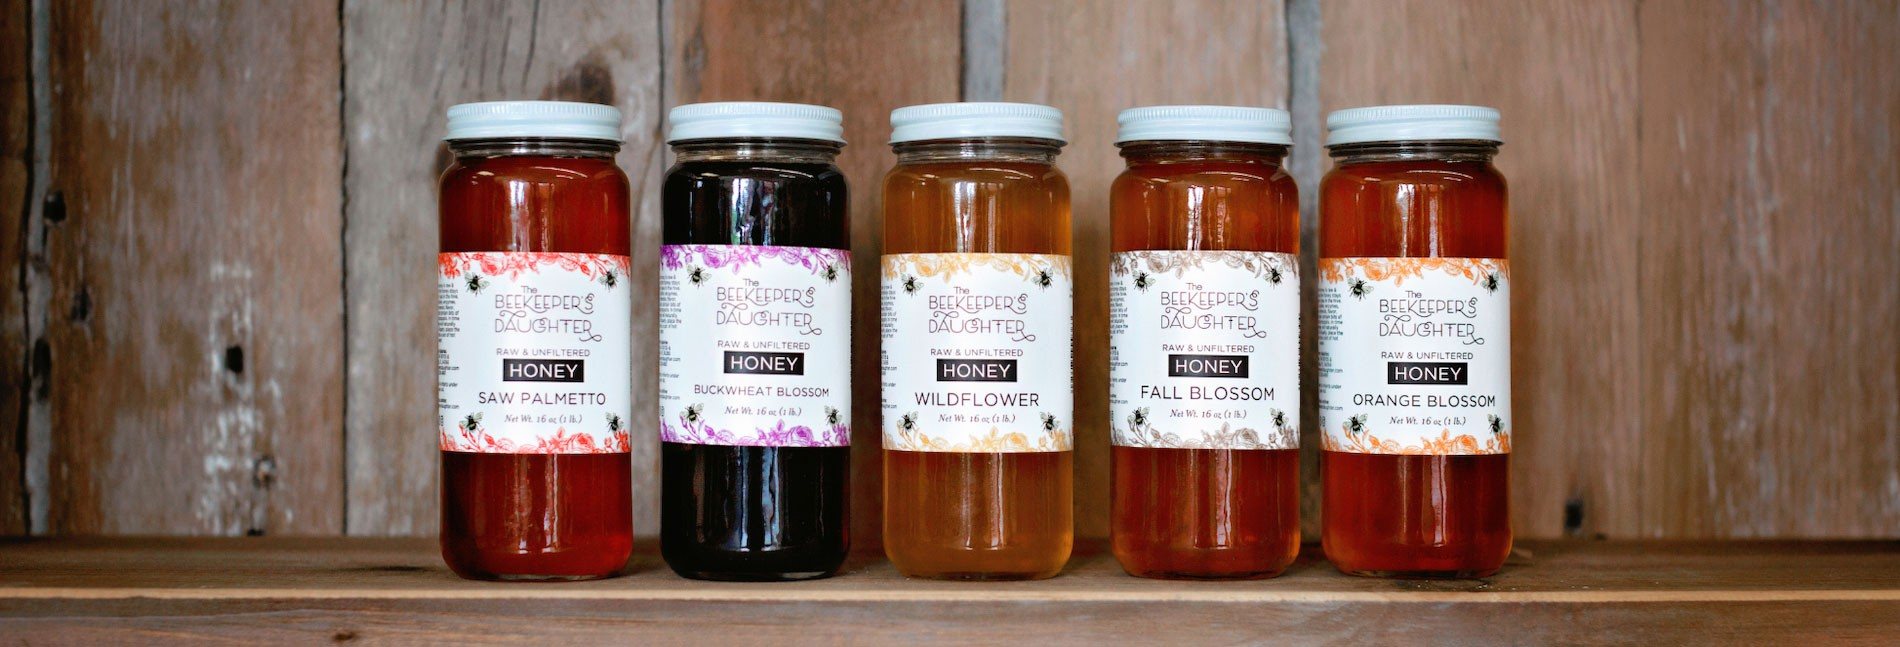 5 options of delicious honey